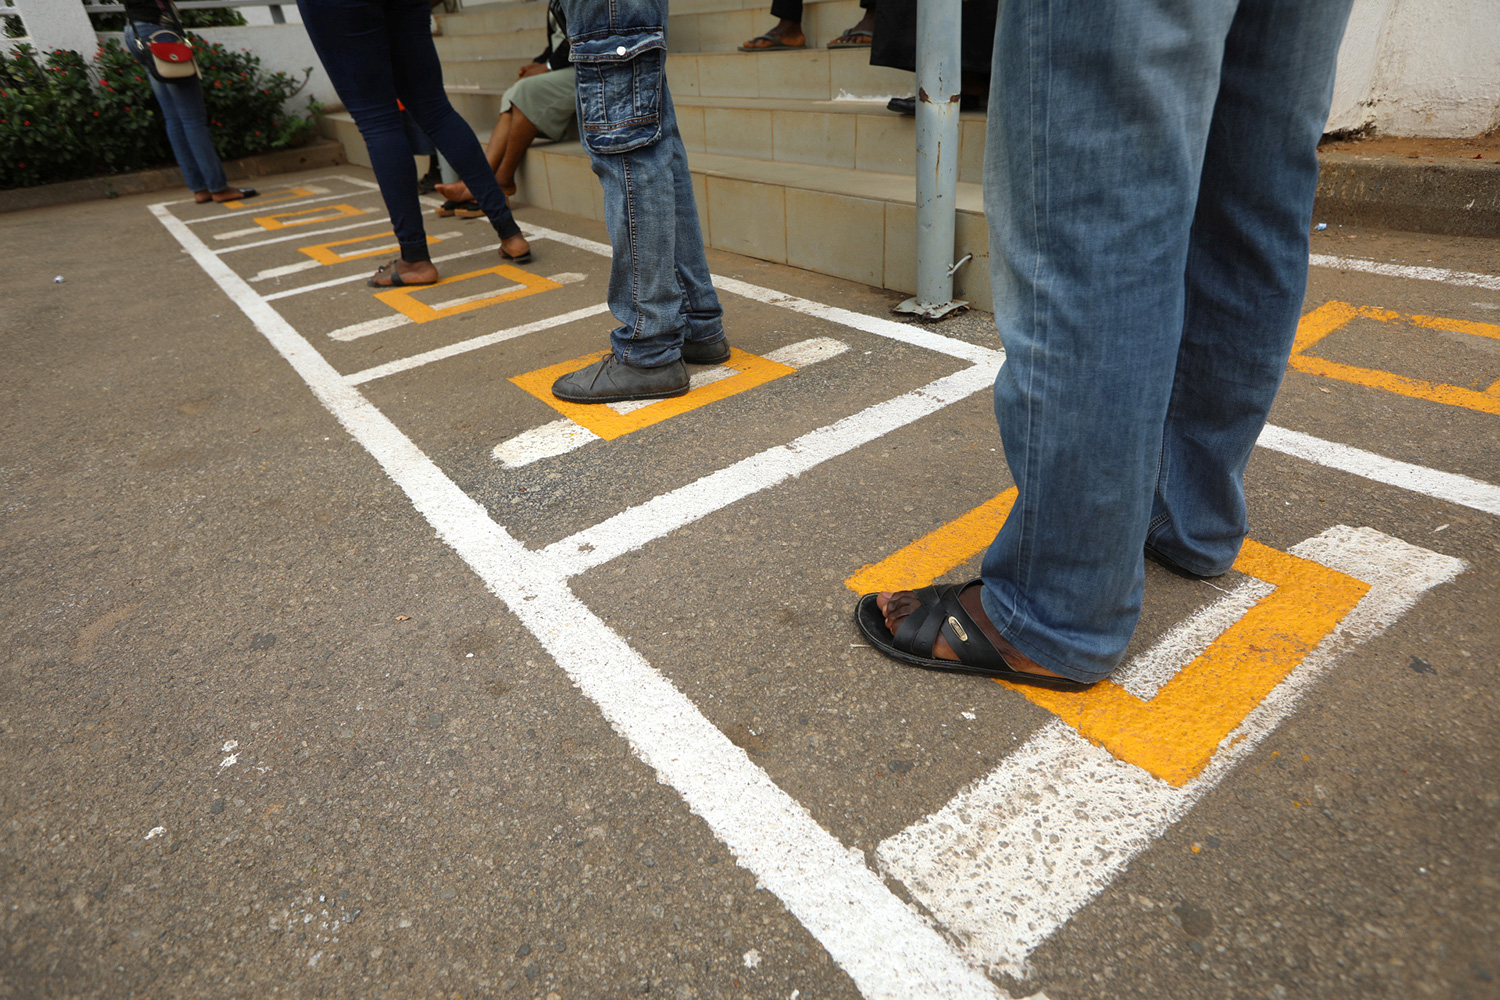 Photo shows the legs of several people standing in social distancing squares painted on a blacktop as they wait in line.